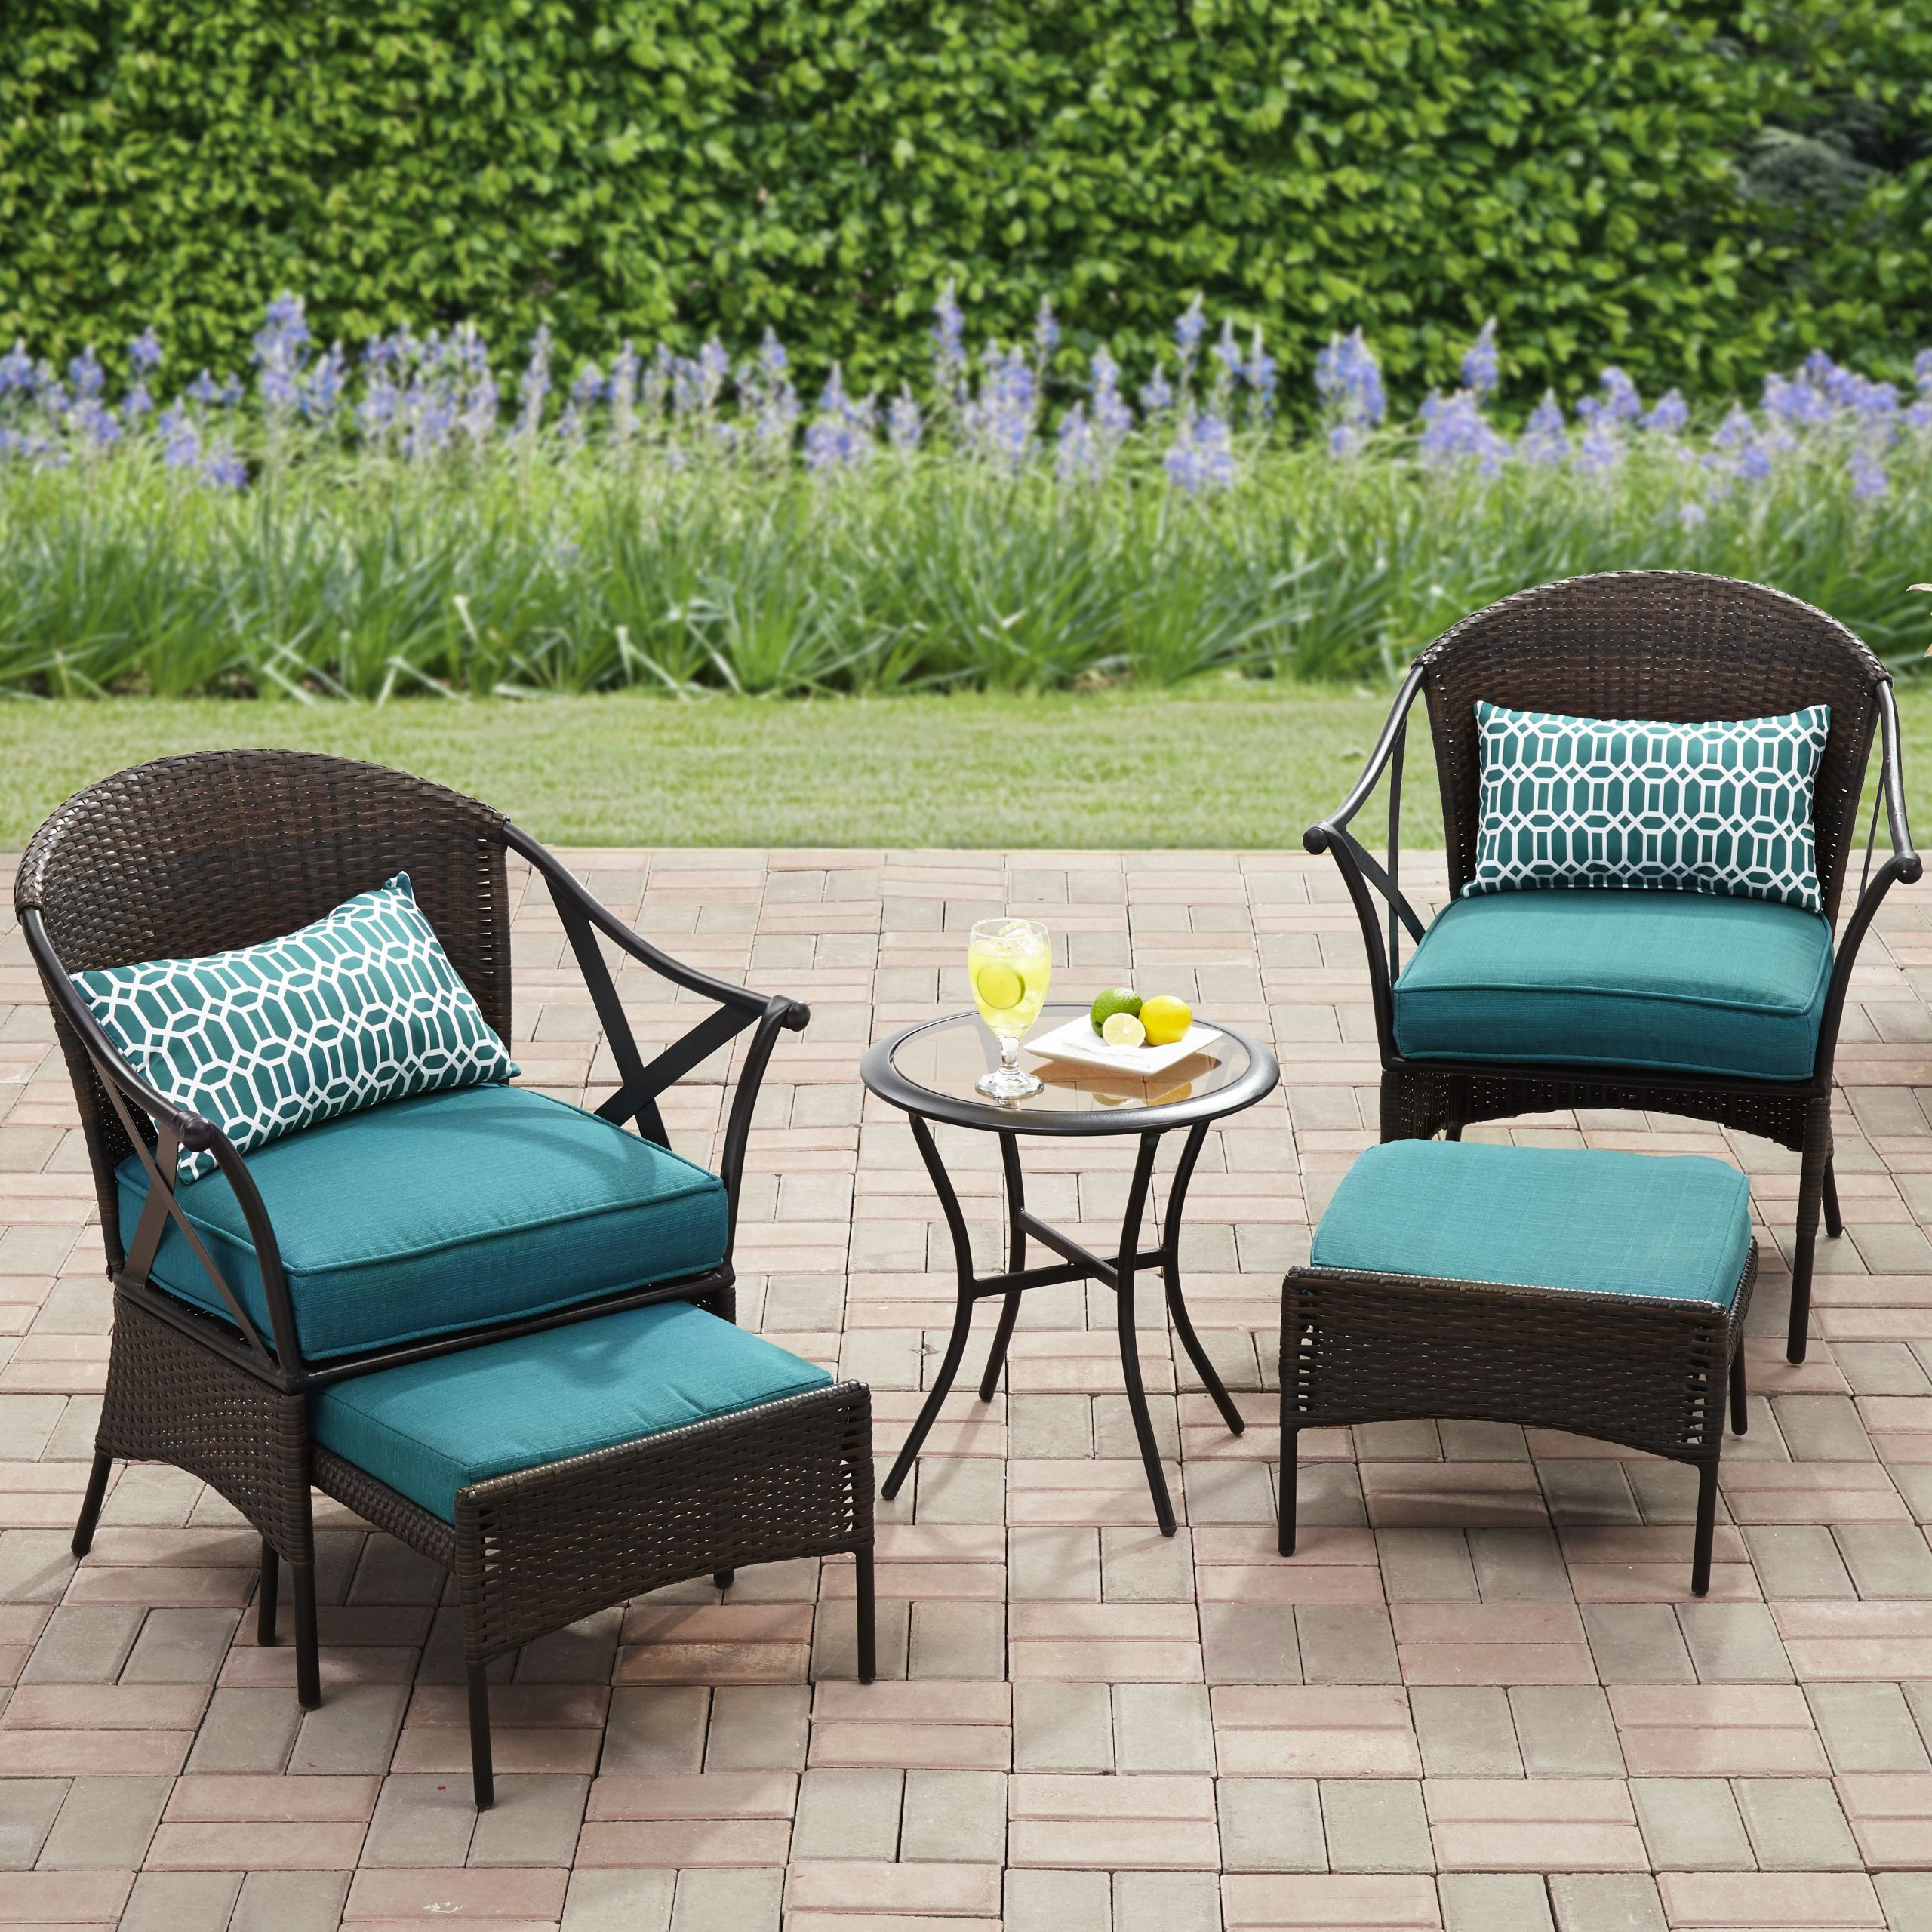 The 11 Best Outdoor Furniture Pieces From Walmart In 2020 Throughout Outdoor Wicker Plastic Tear Porch Swings With Stand (View 18 of 25)